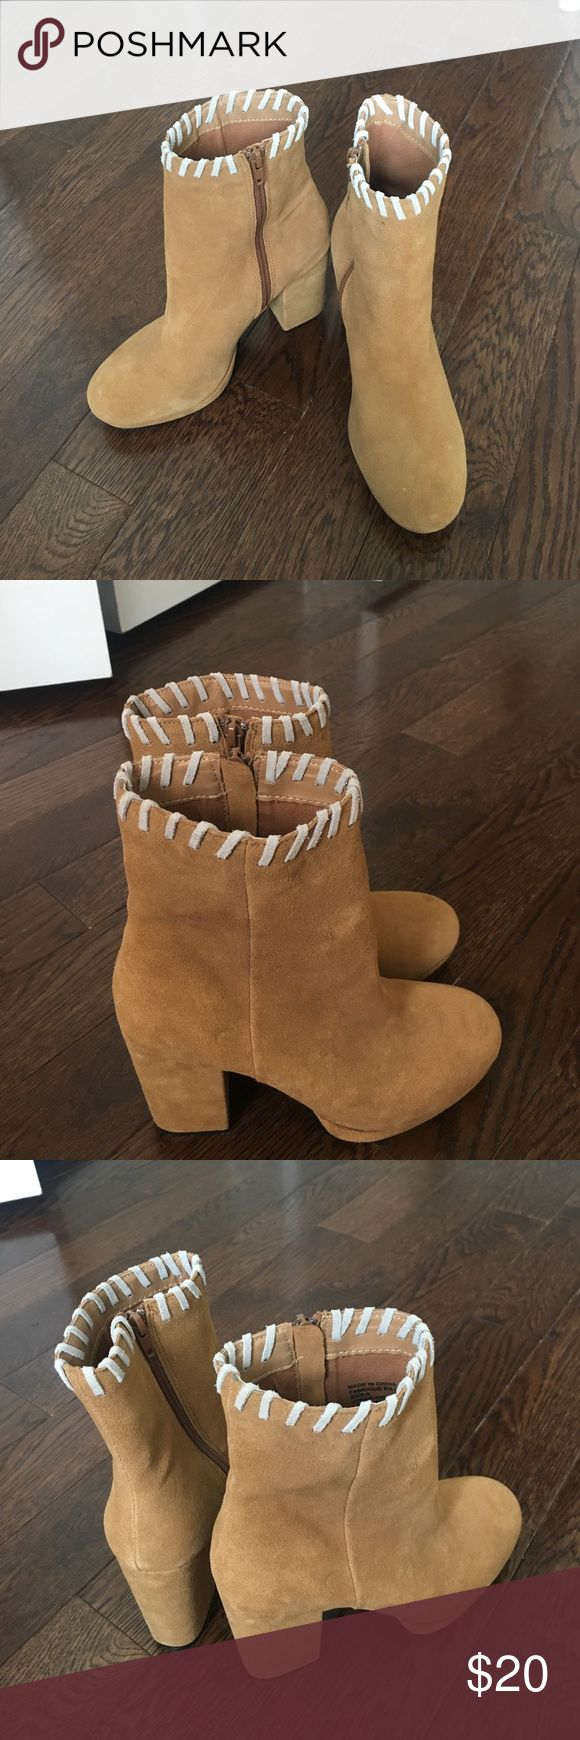 Urban outfitters tan suede heeled boots Brand new, never worn, Urban outfitters size 8 tan suede boots with a 2 inch heel. Urban Outfitters Shoes Heeled Boots